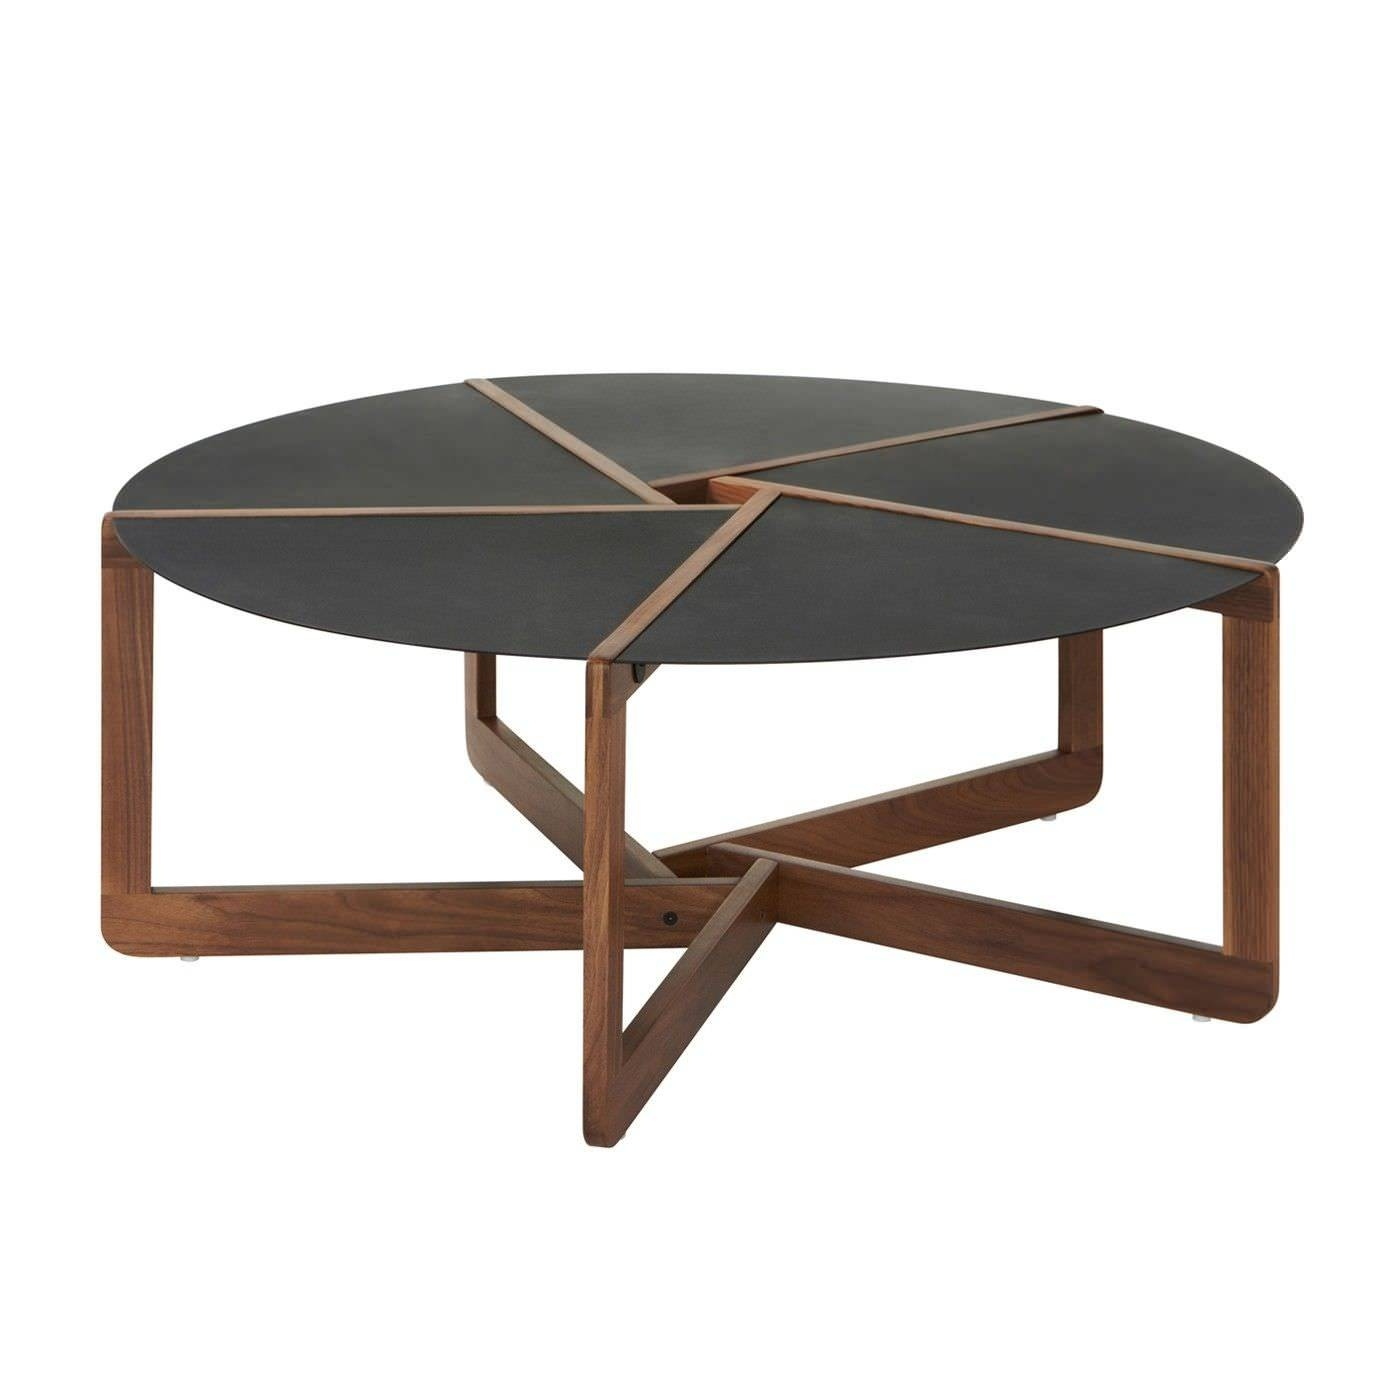 Contemporary Coffee Table / Walnut / Solid Wood / Ash - Pi - Blu Dot regarding Contemporary Coffee Table (Image 11 of 30)